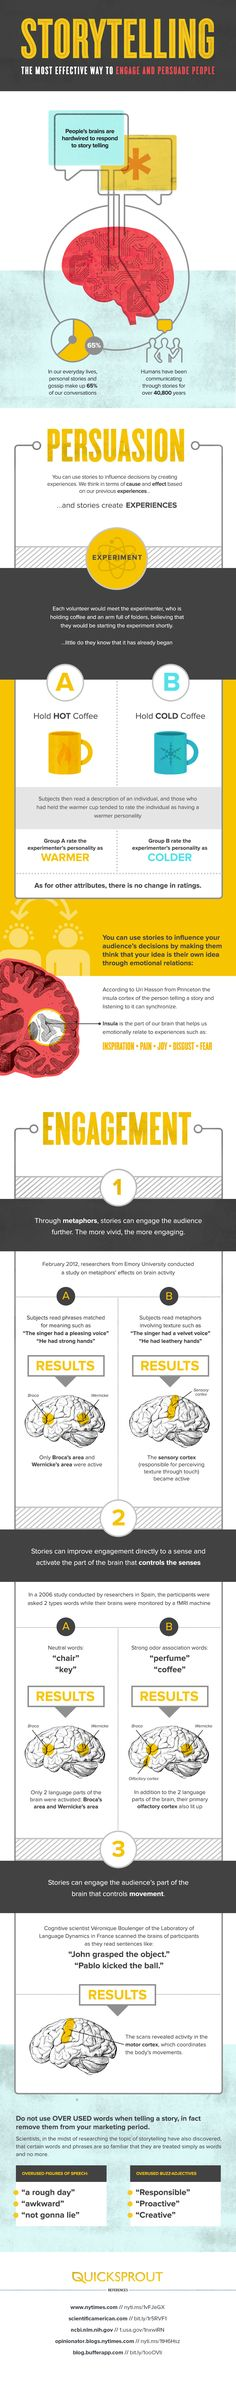 Using Storytelling to Engage and Persuade (Infographic)